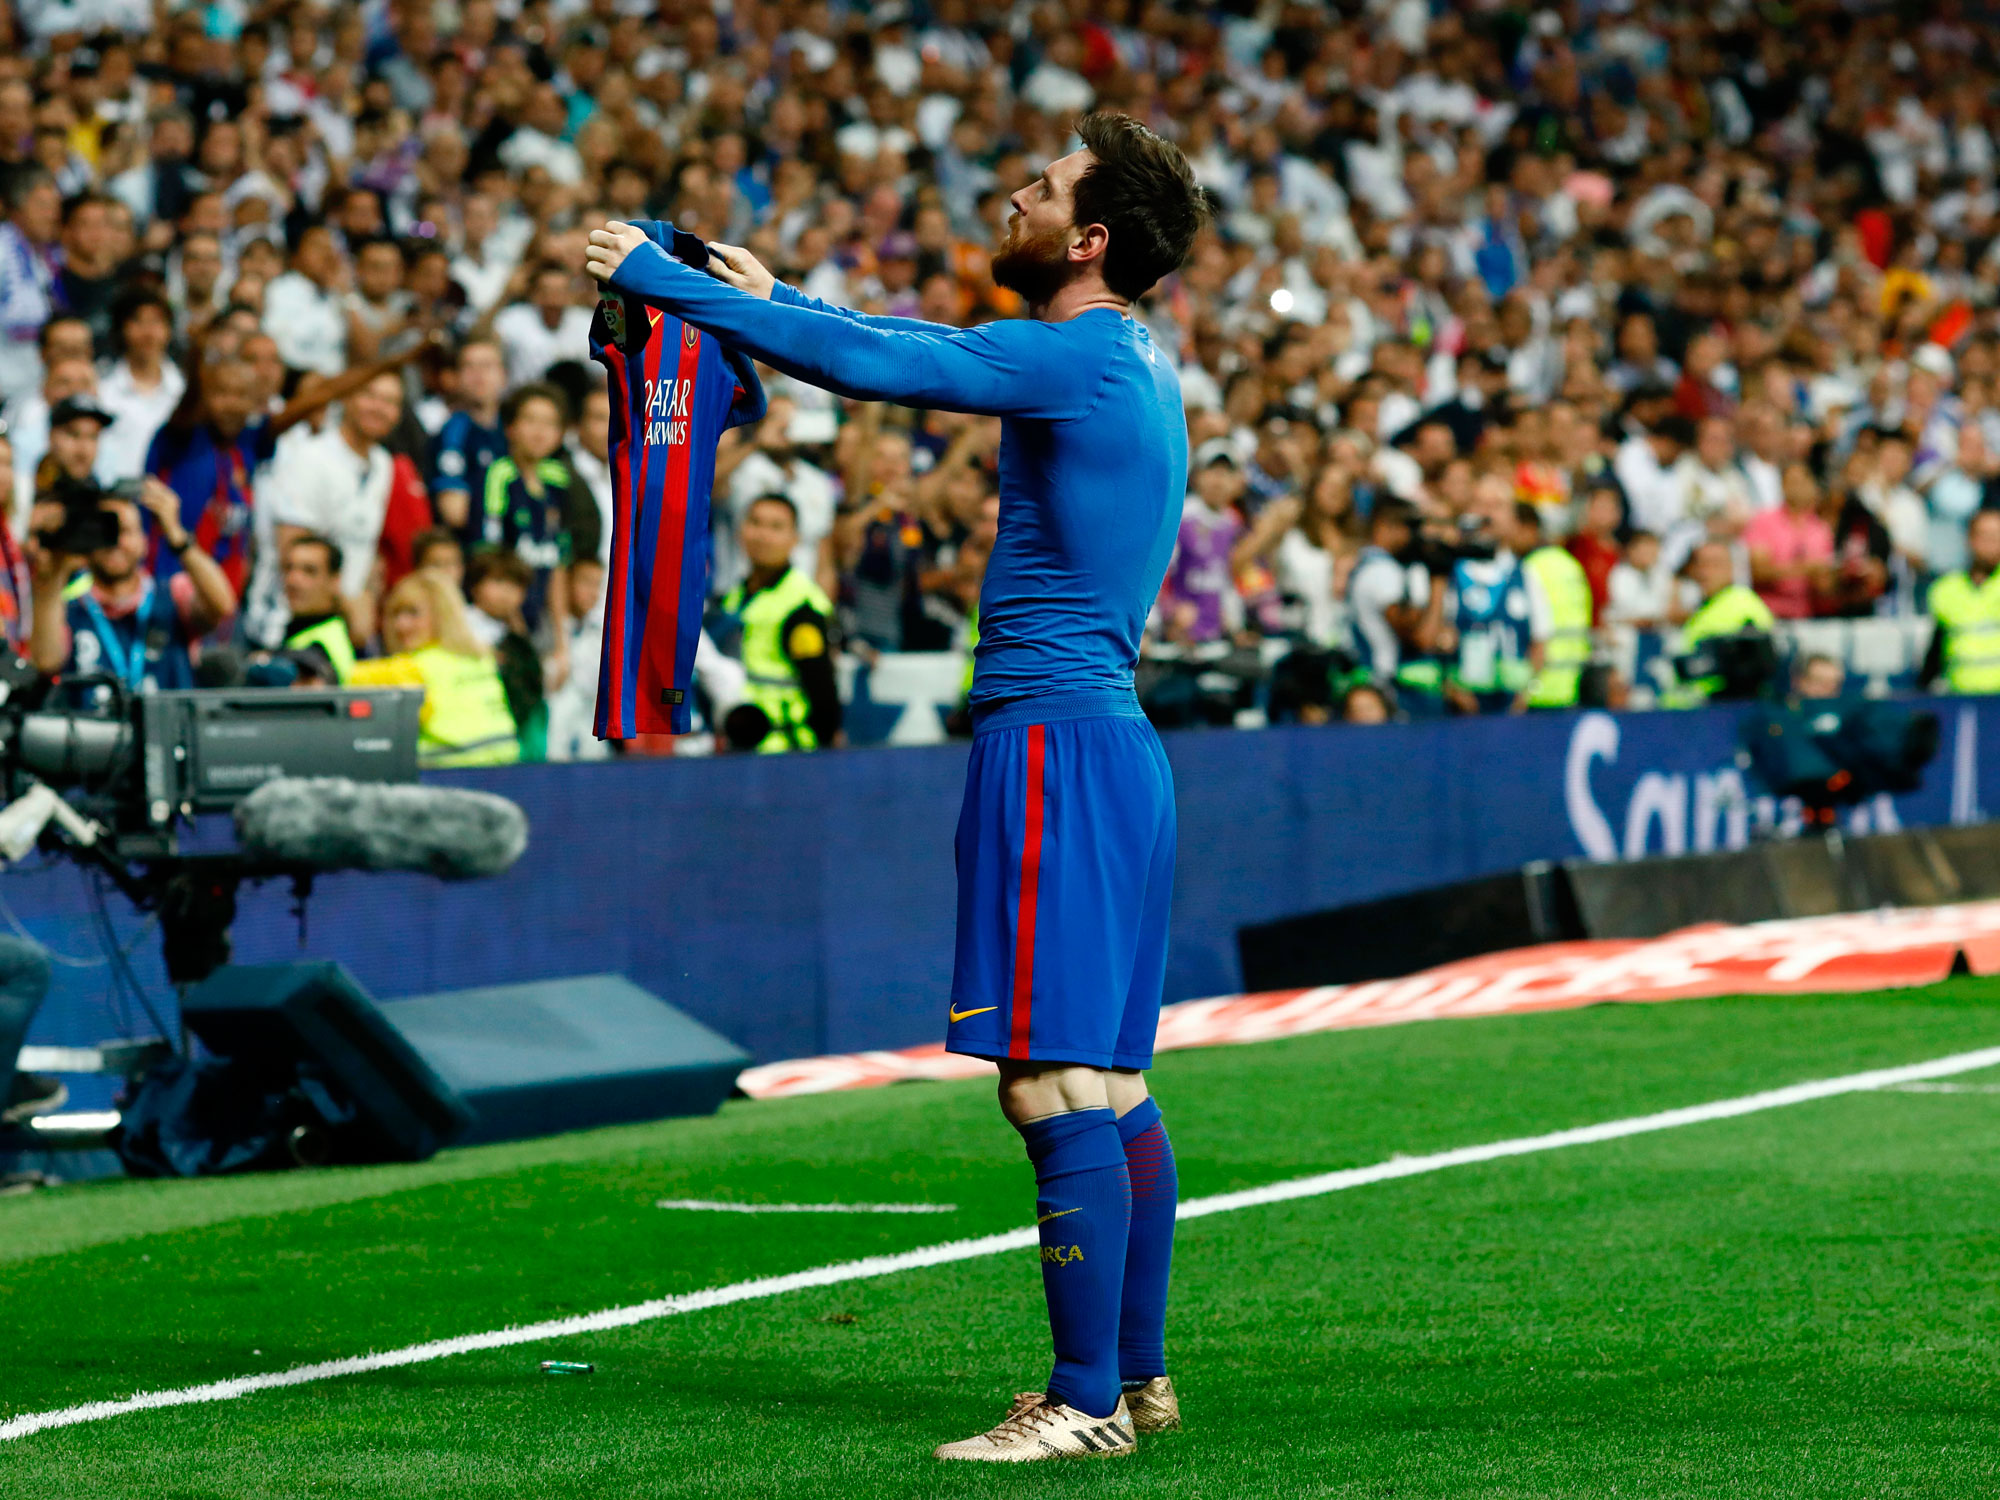 Messi reaches 500 goals for Barcelona - inside his remarkable numbers